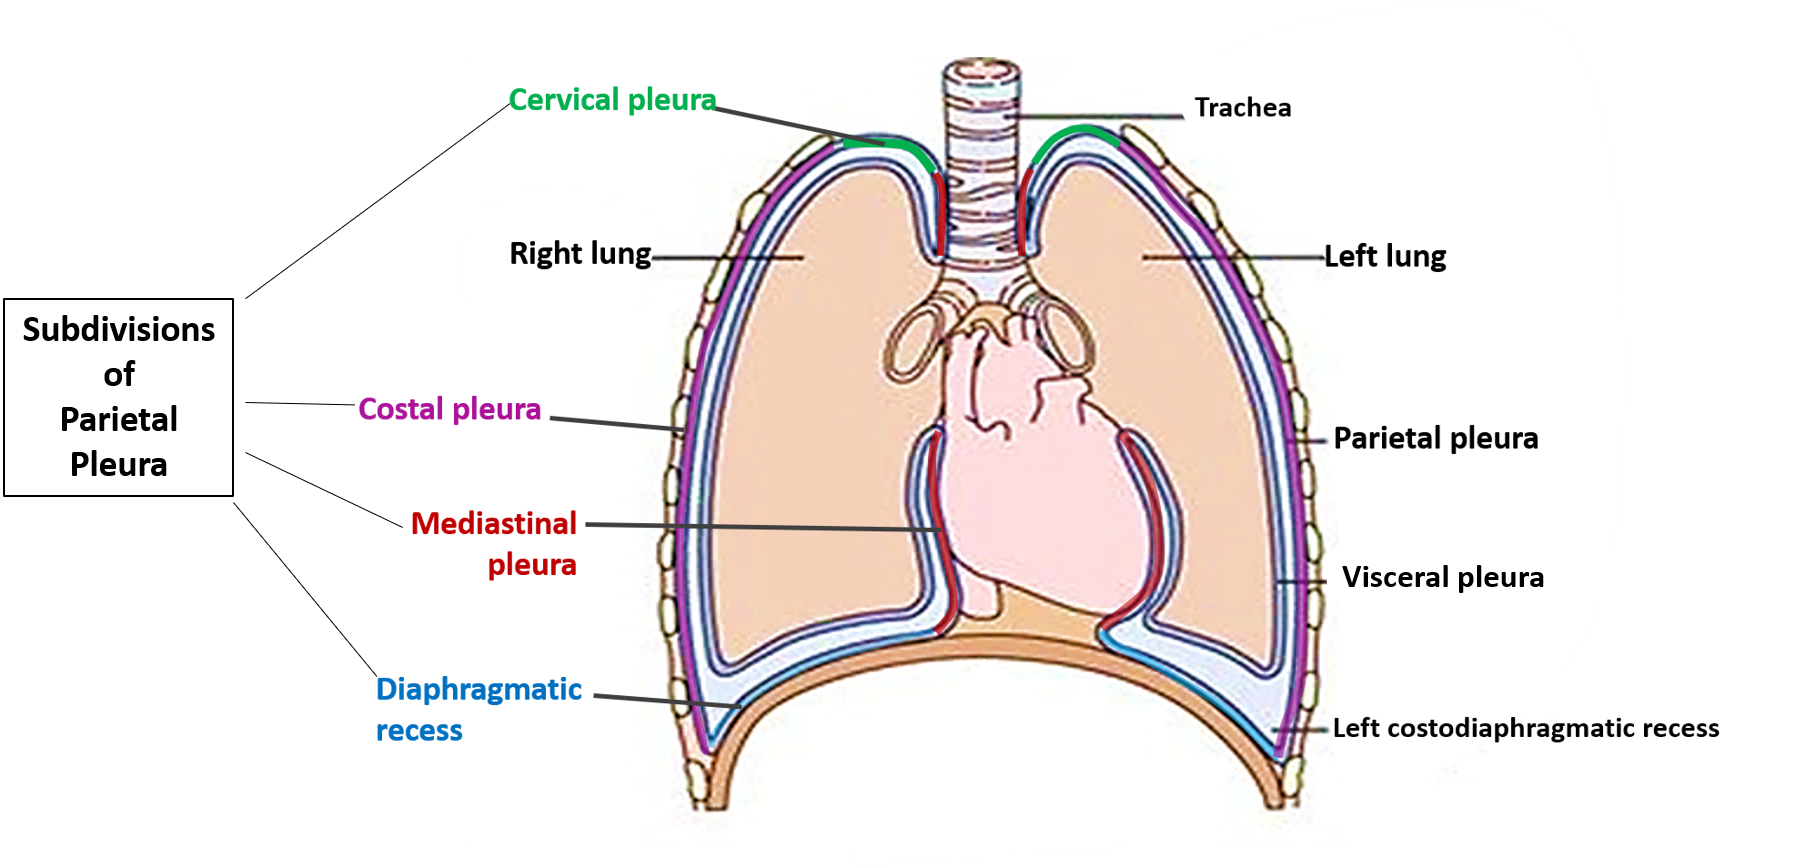 Pleura And Pleural Recesses together with Mediastinum 25993031 additionally Suprapleural membrane also Hemothorax together with 3898326. on pleura of thoracic cavity